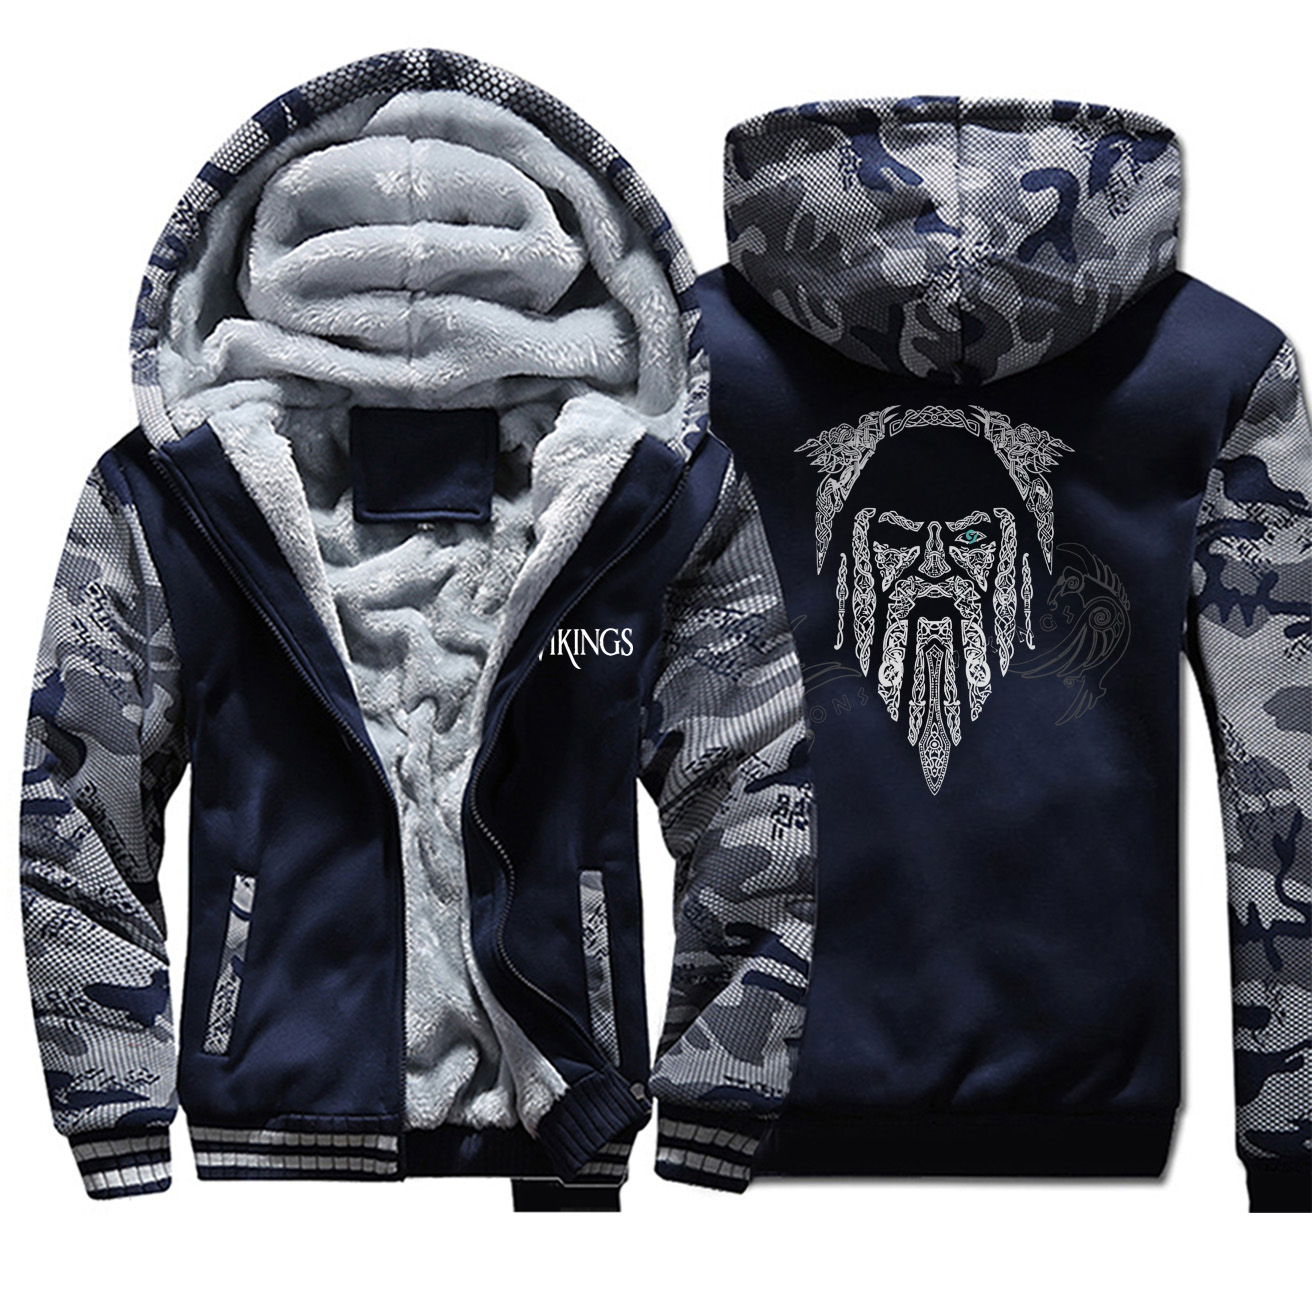 2019 Winter Camouflage Thicken Men Hoodies Odin Vikings Printing Male Brand Jackets Casual All-match Stylish Clothing Streetwear